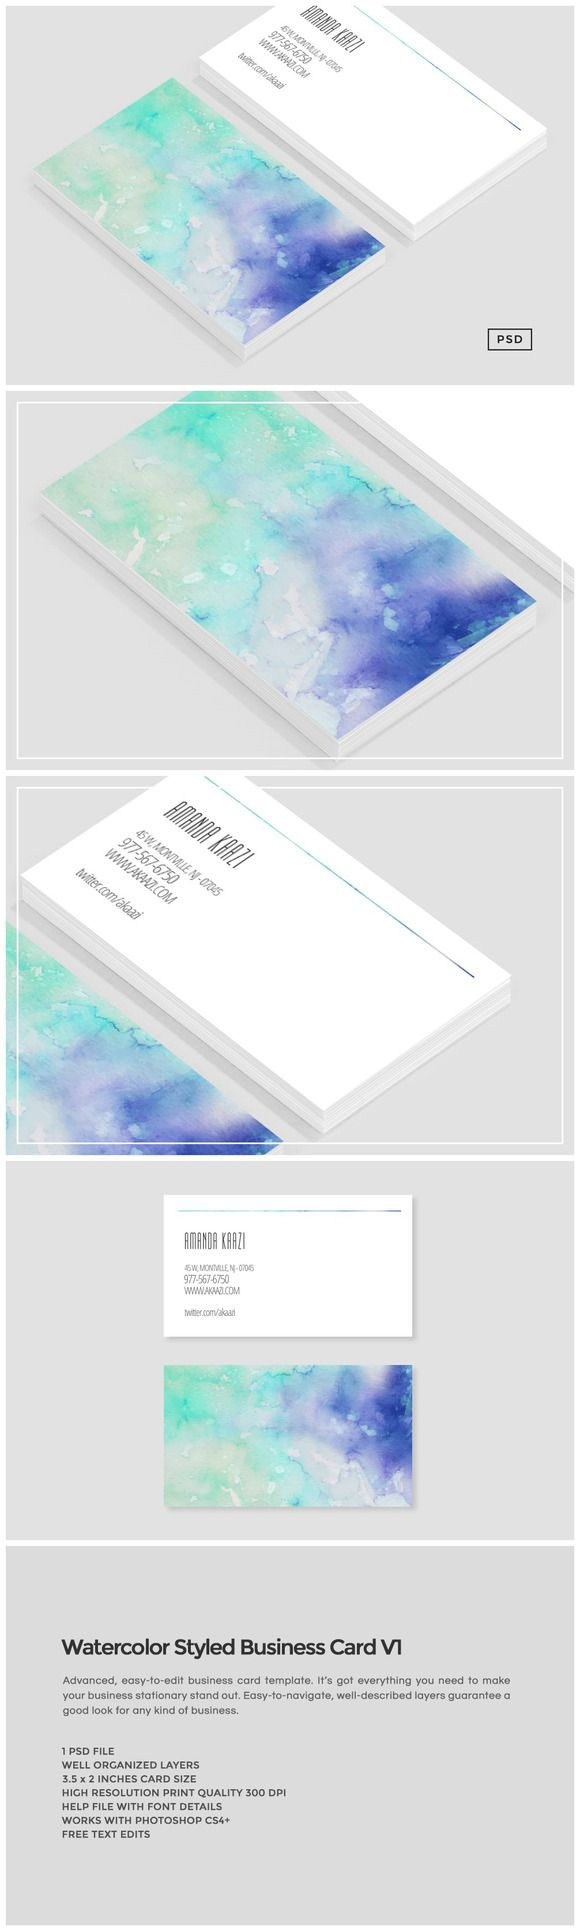 155 best Cool Business Card Designs images on Pinterest | Business ...